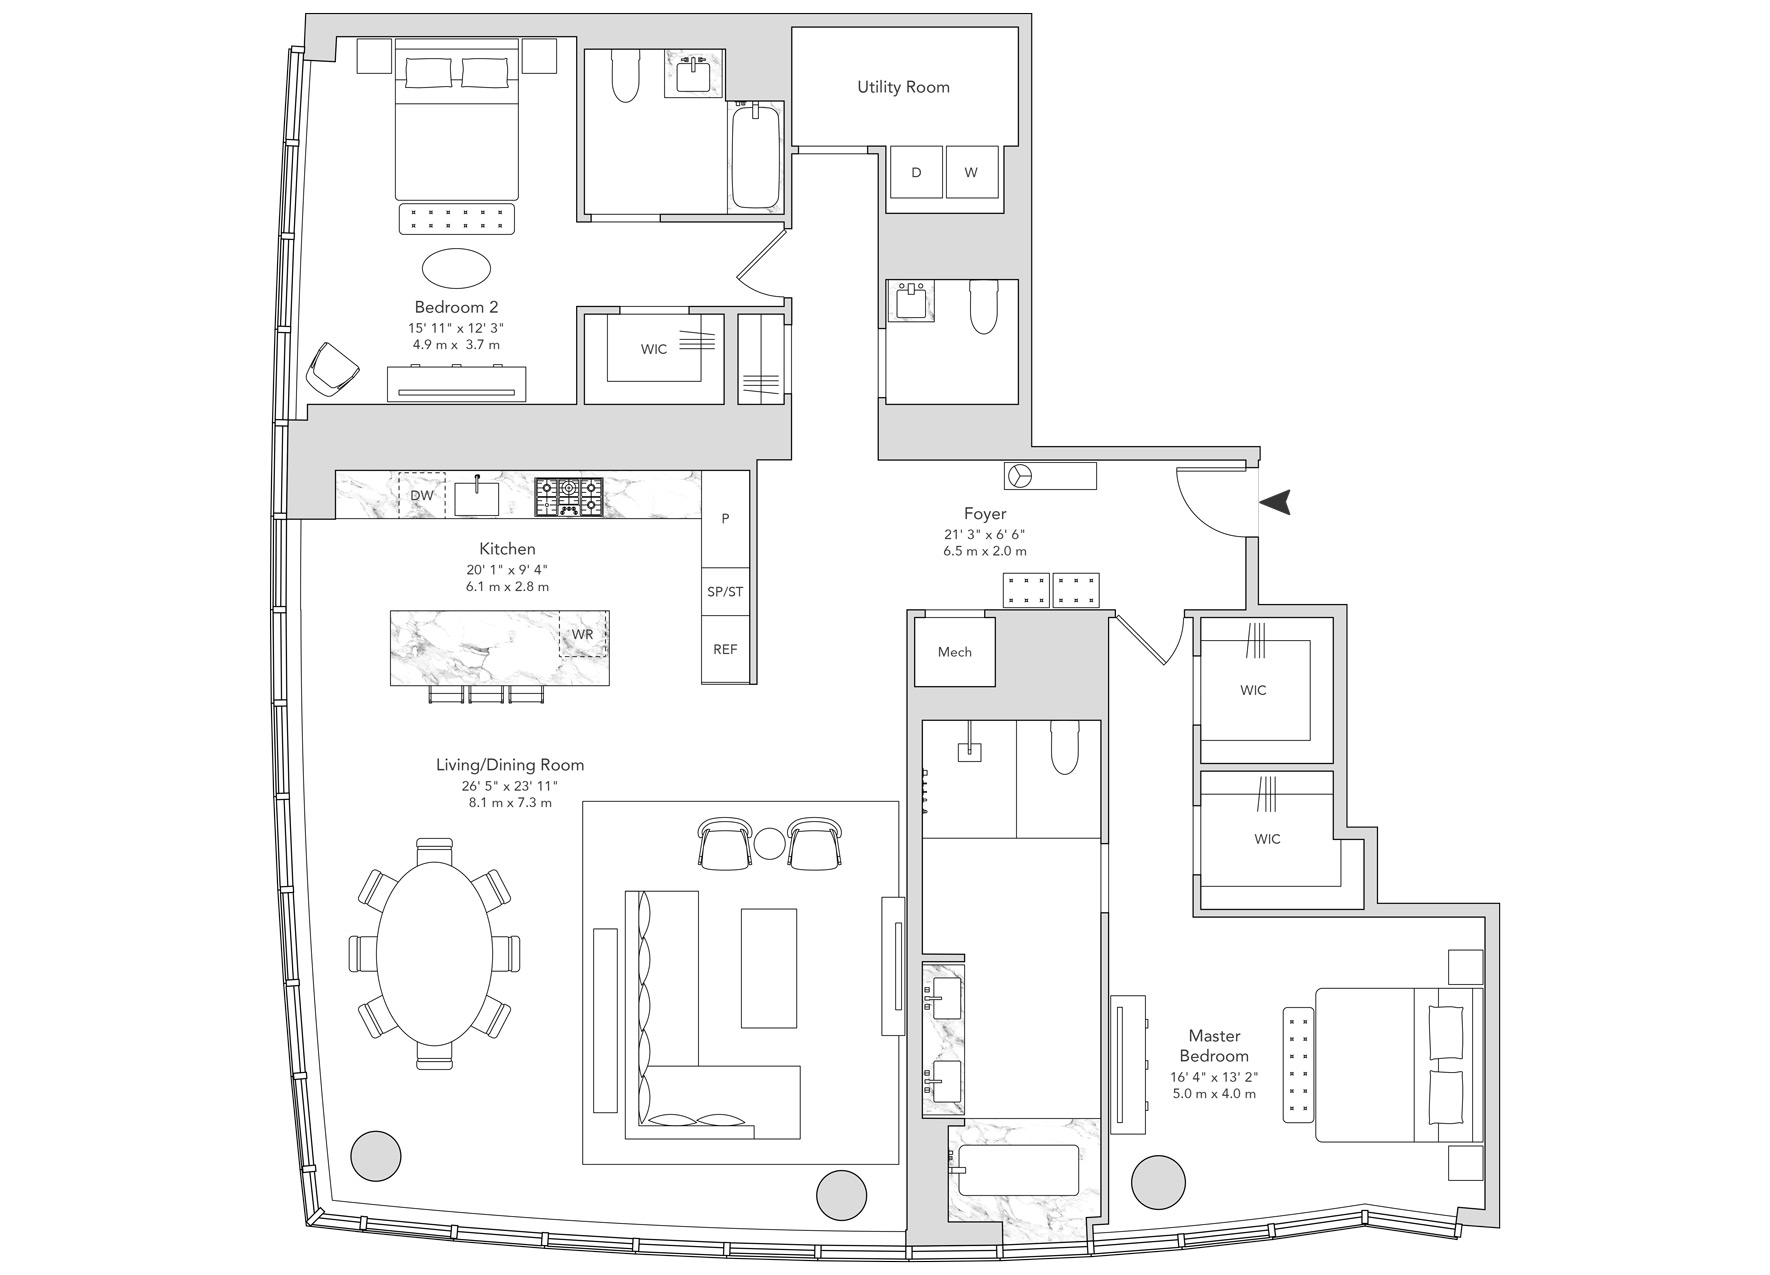 http://content.related.com/Properties%20for%20Sale%20Images/615_66B_med.jpg